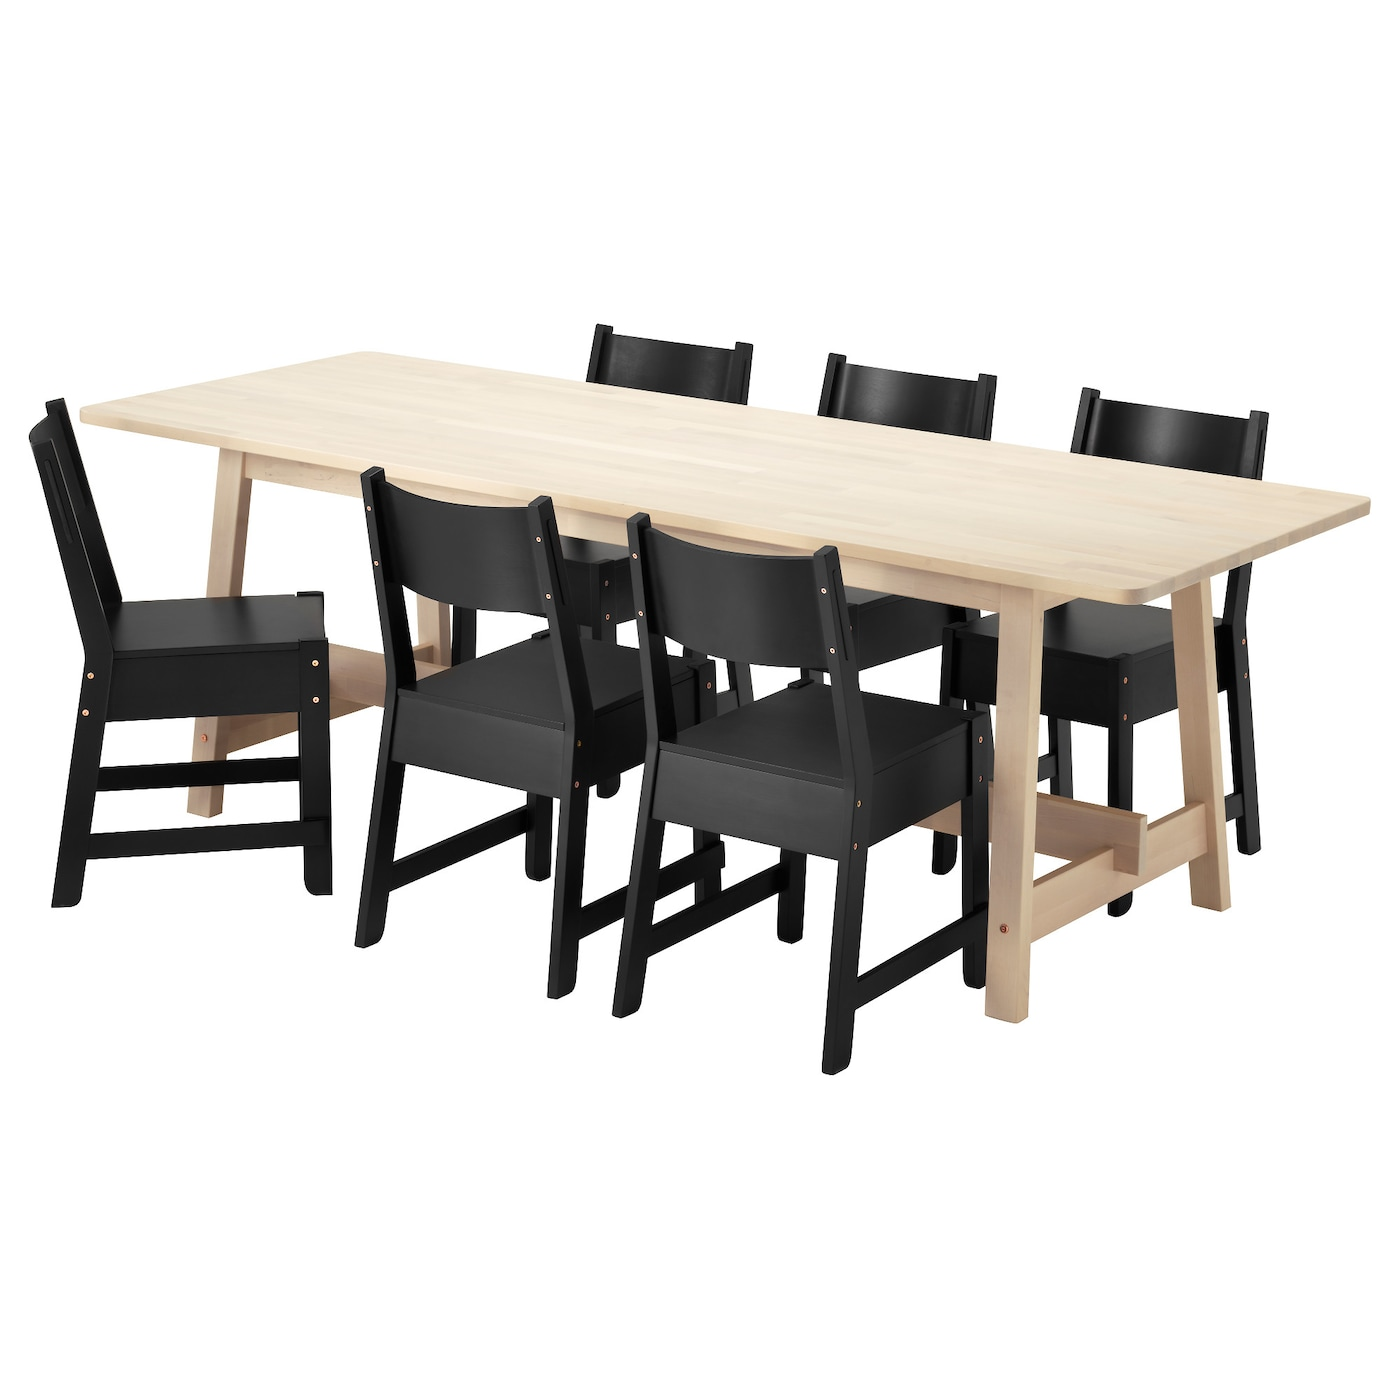 IKEA NORRÅKER/NORRÅKER table and 6 chairs